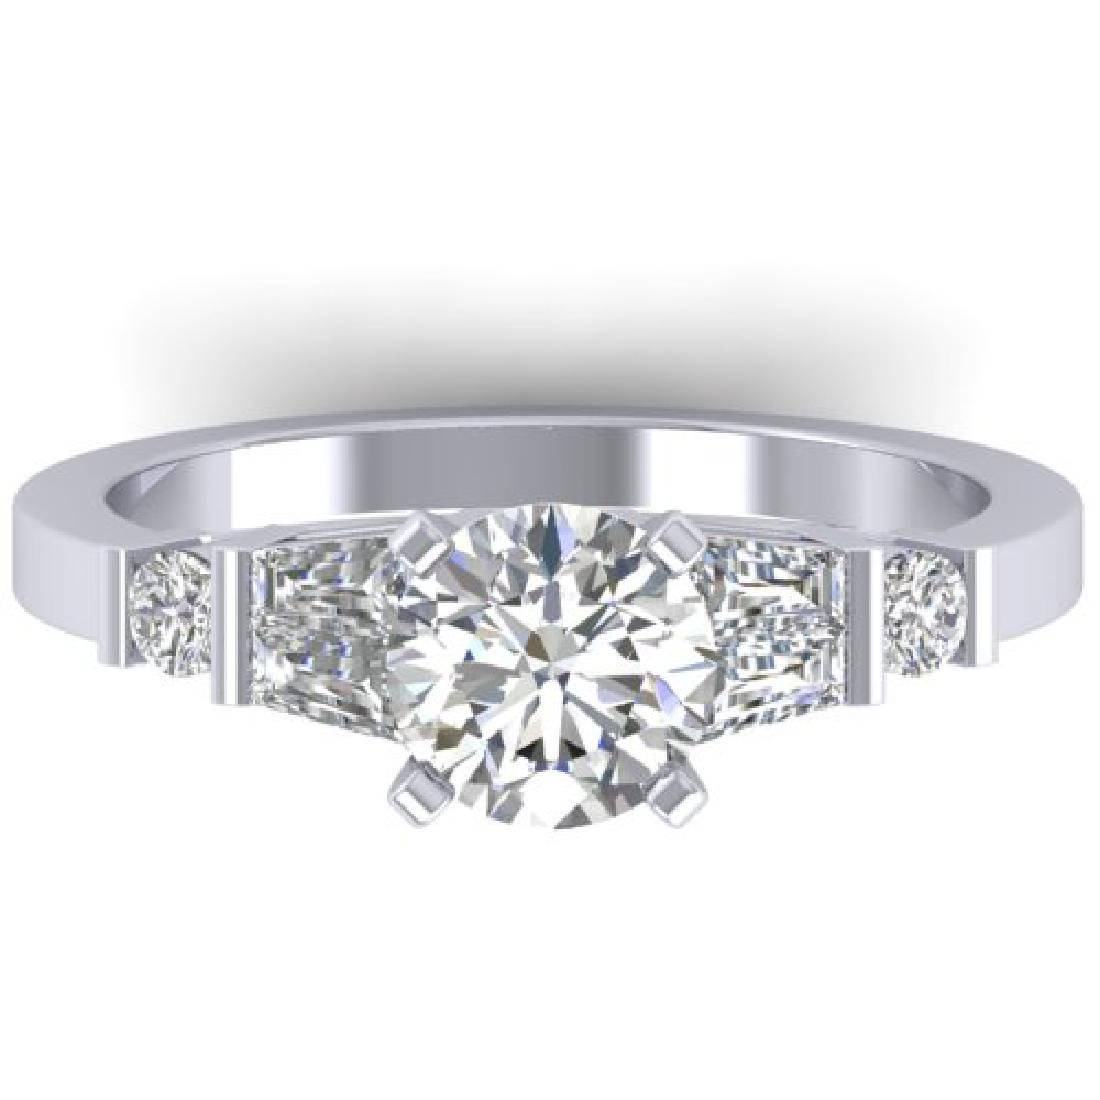 1.69 CTW Certified VS/SI Diamond Solitaire Ring 18K